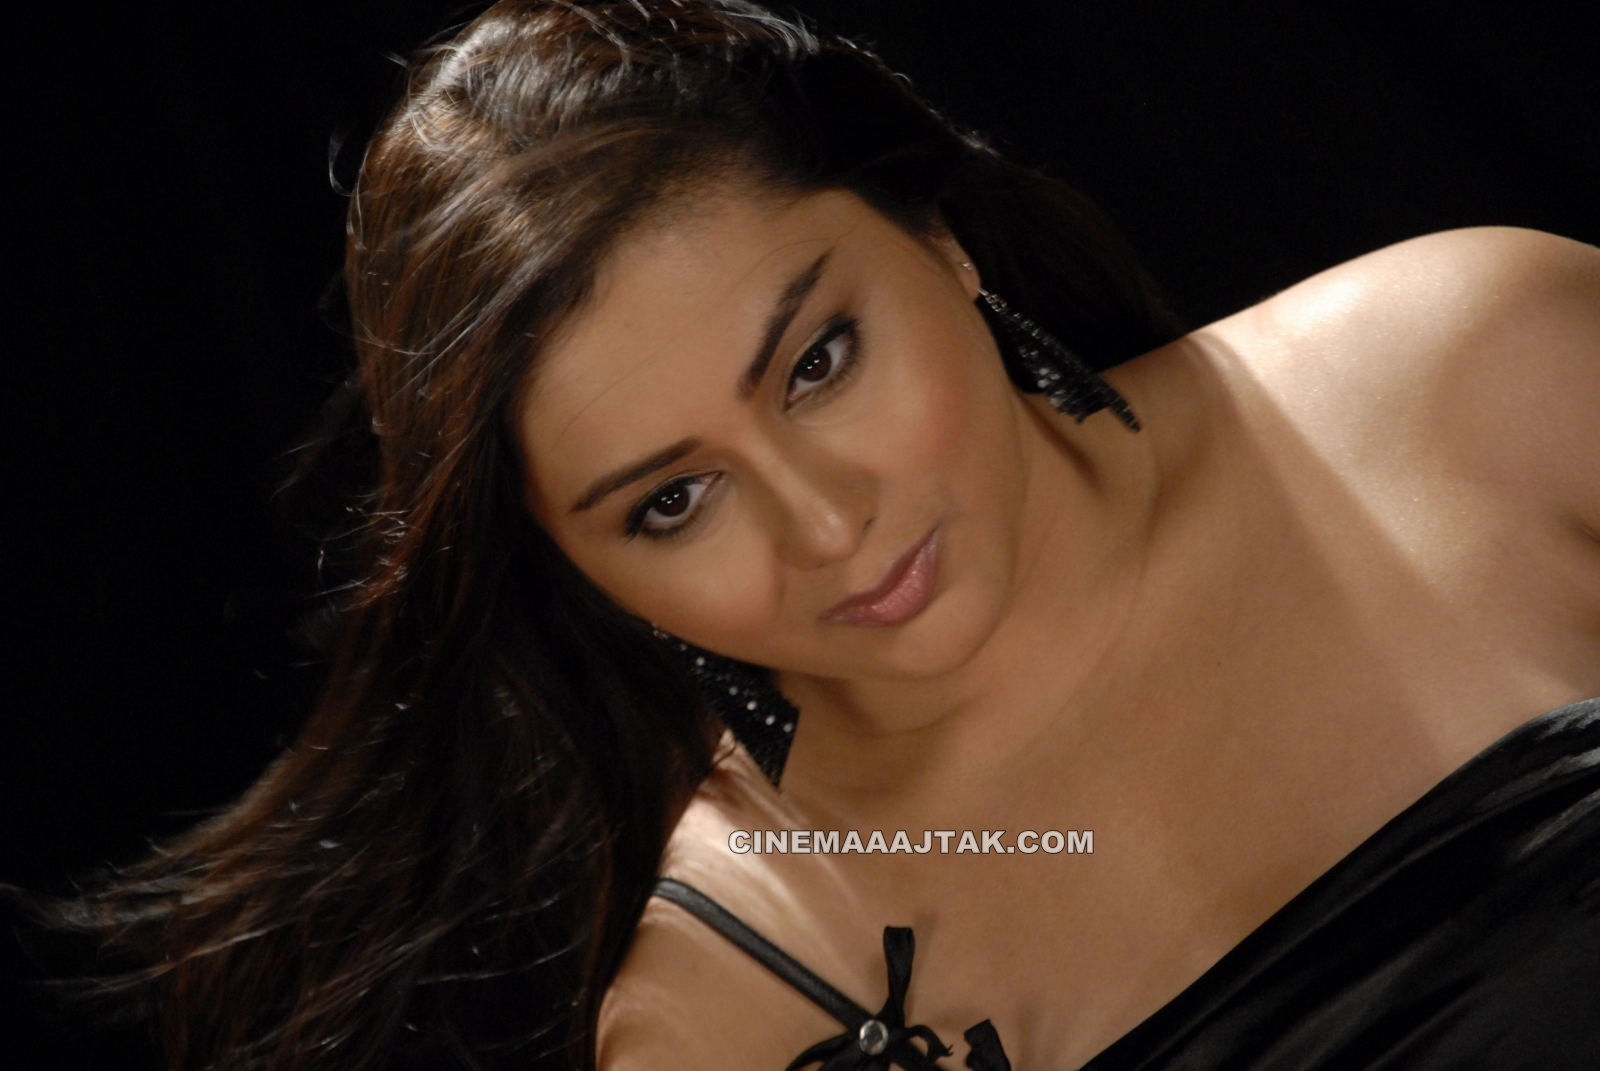 Namita Looking Hot In Love College Movie Images - DesiRulez.